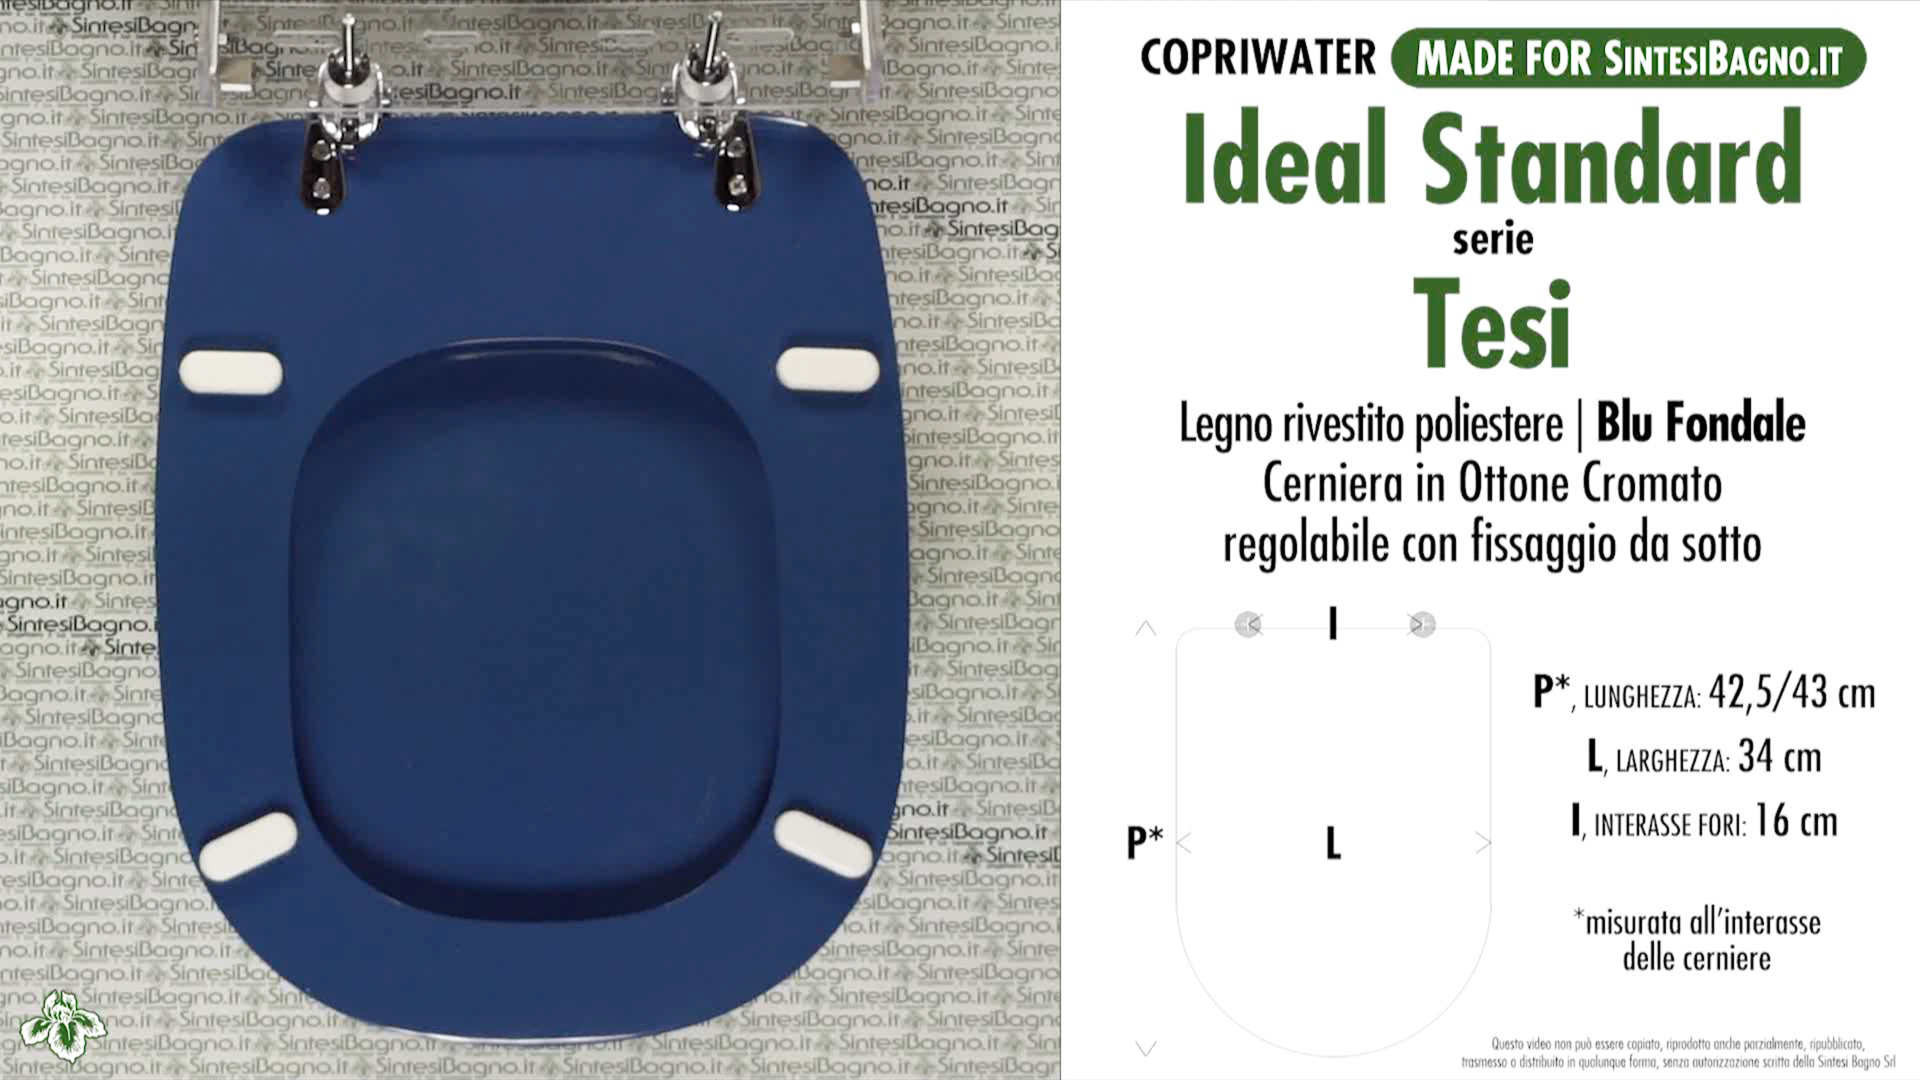 Sedile Wc Tesi Ideal Standard.Copriwater Per Wc Tesi Ideal Standard Fondale Ricambio Dedicato Sintesibagno Shop Online